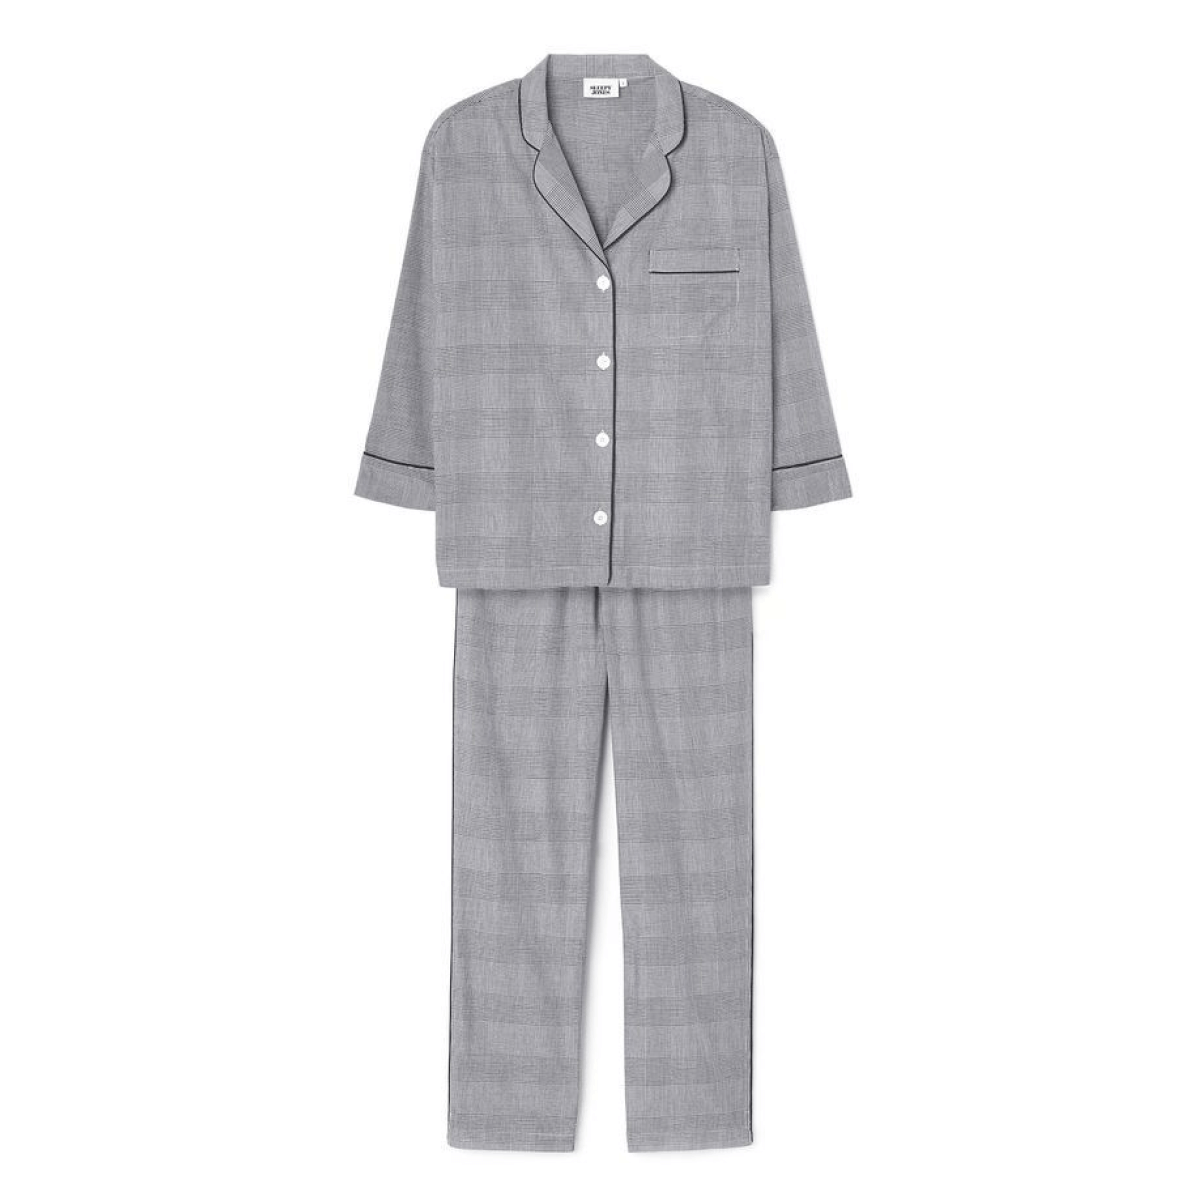 Sleepy Jones Pajama Set